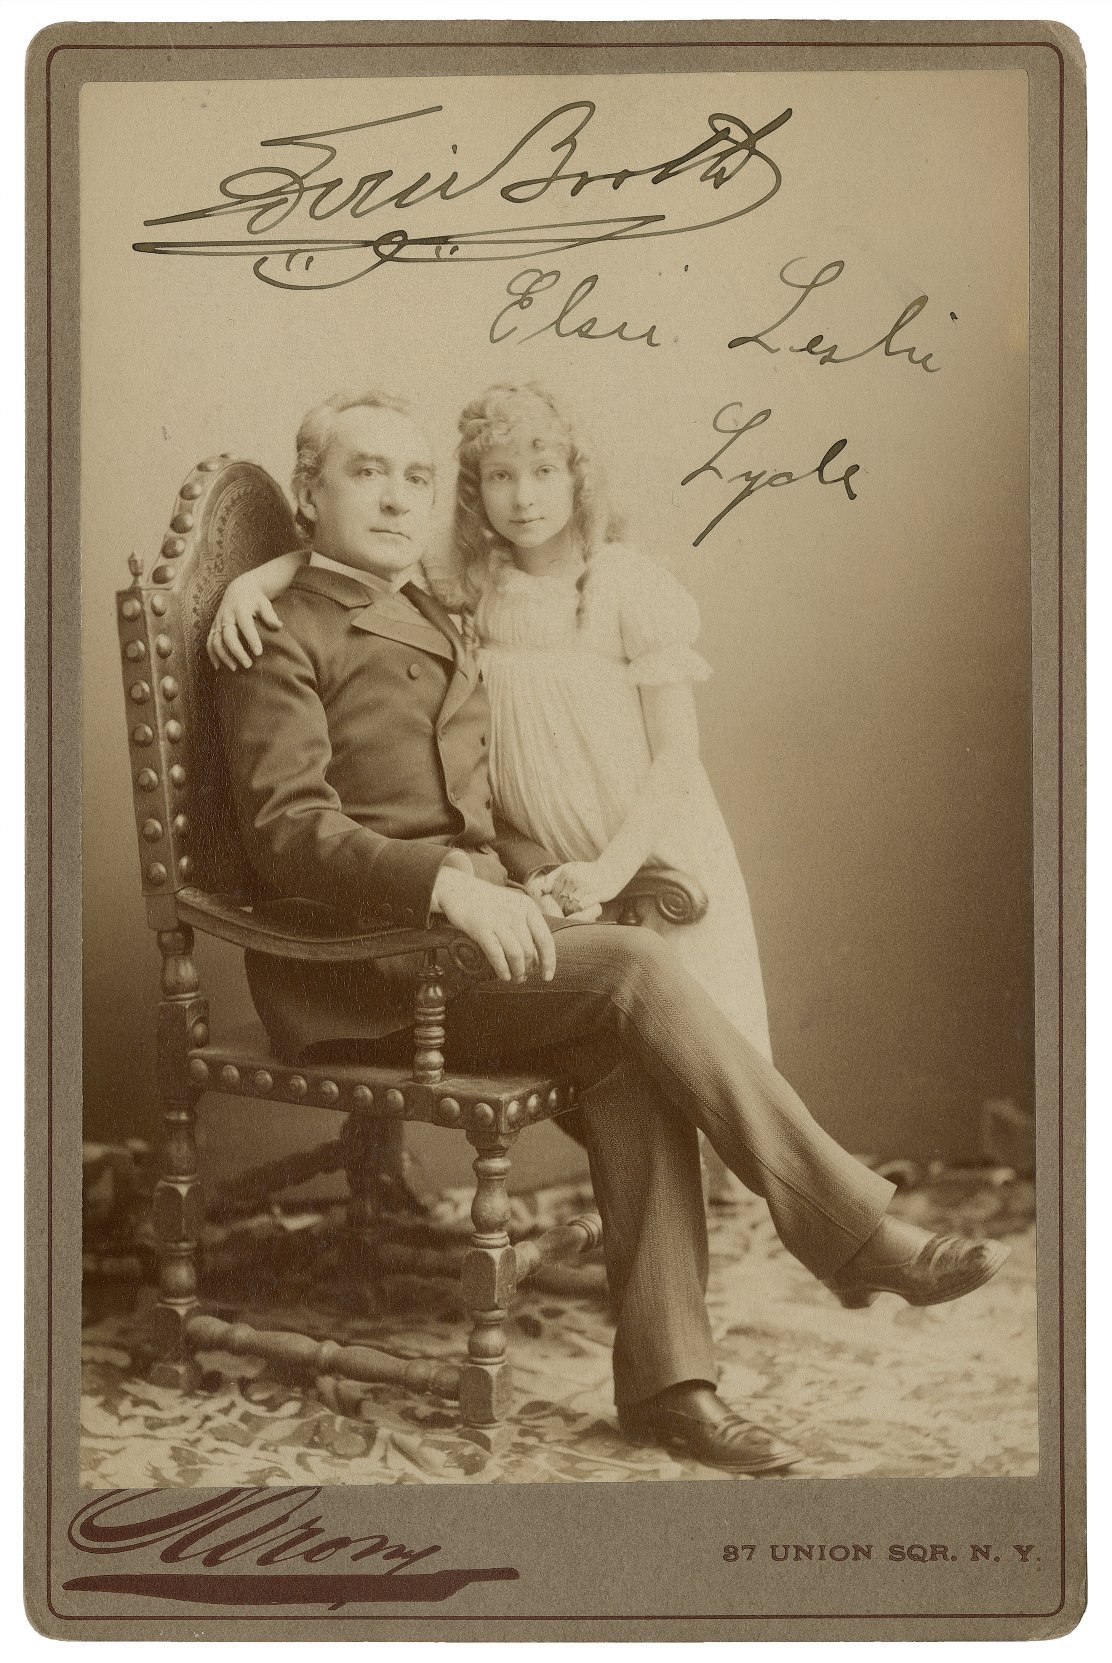 Edwin Booth [and] Elsie Leslie Lyde. Napoleon Sarony. Photograph. Folger Shakespeare Library.